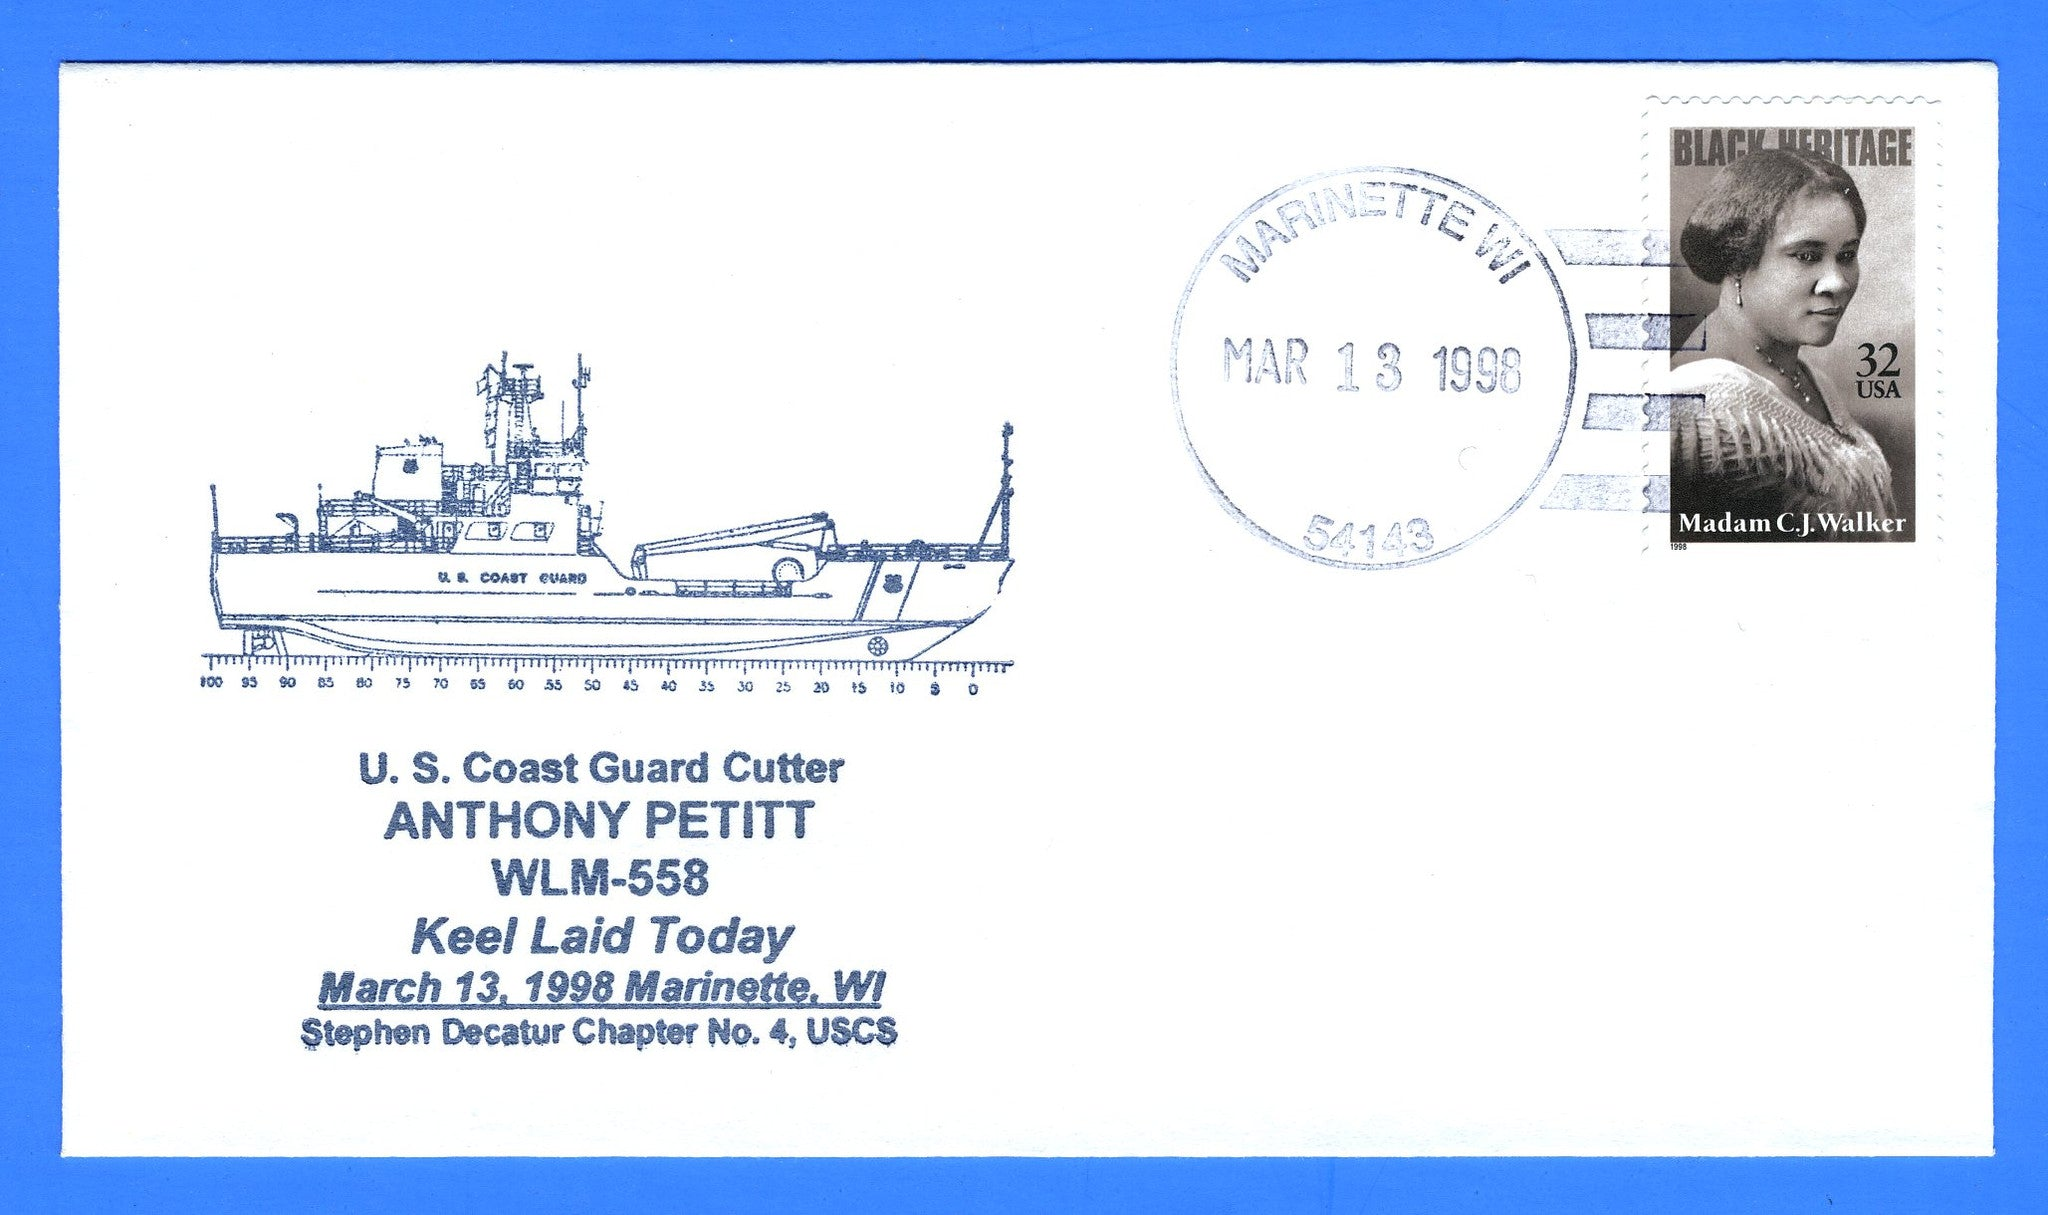 USCGC Anthony Petitt WLM-558 Keel Laid March 13, 1998 - Cachet by USS Decatur Chapter No. 4, USCS